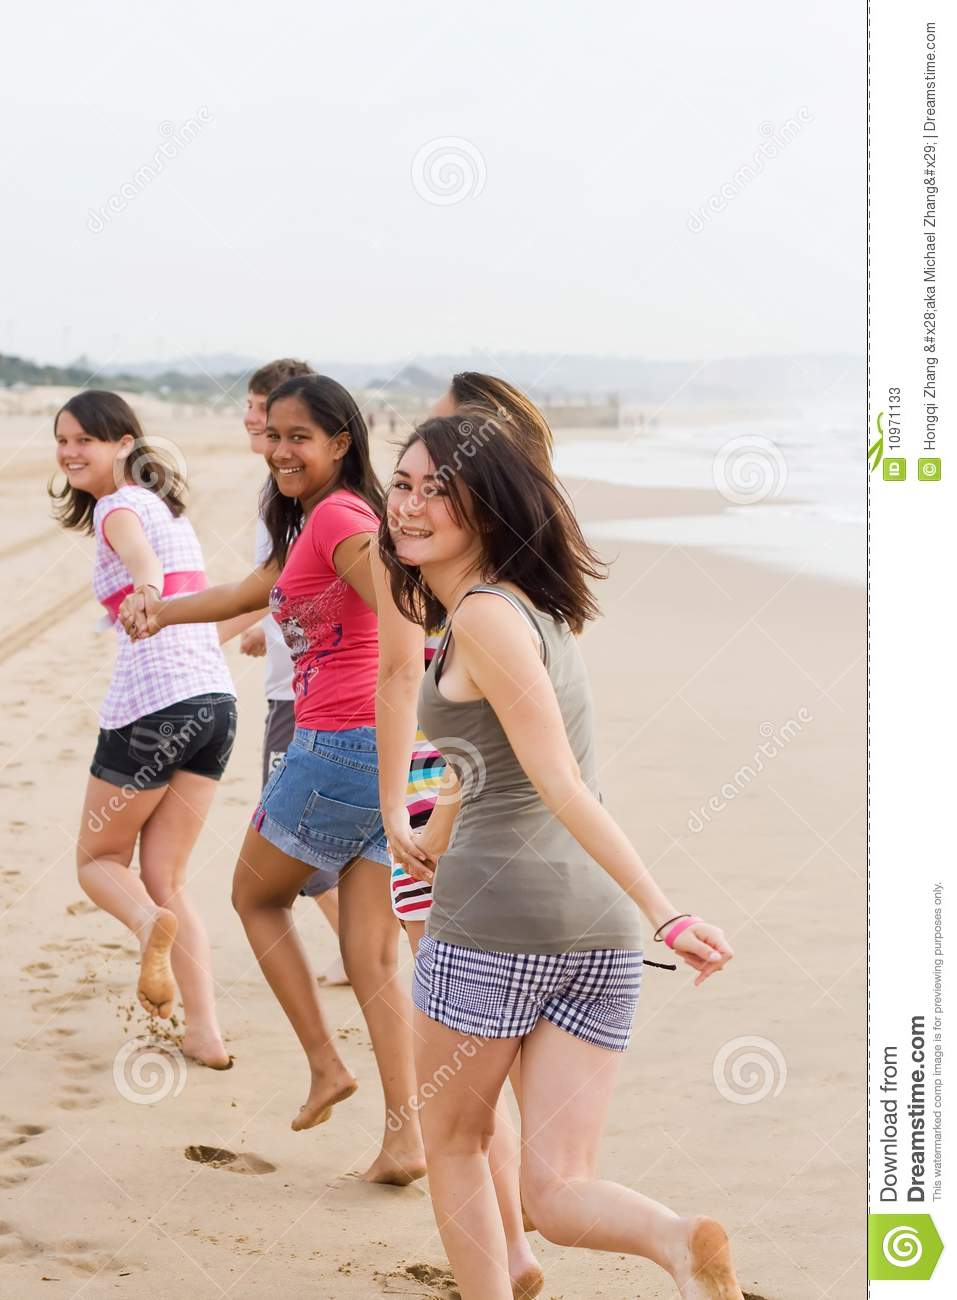 Young group of teens running on beach and having fun